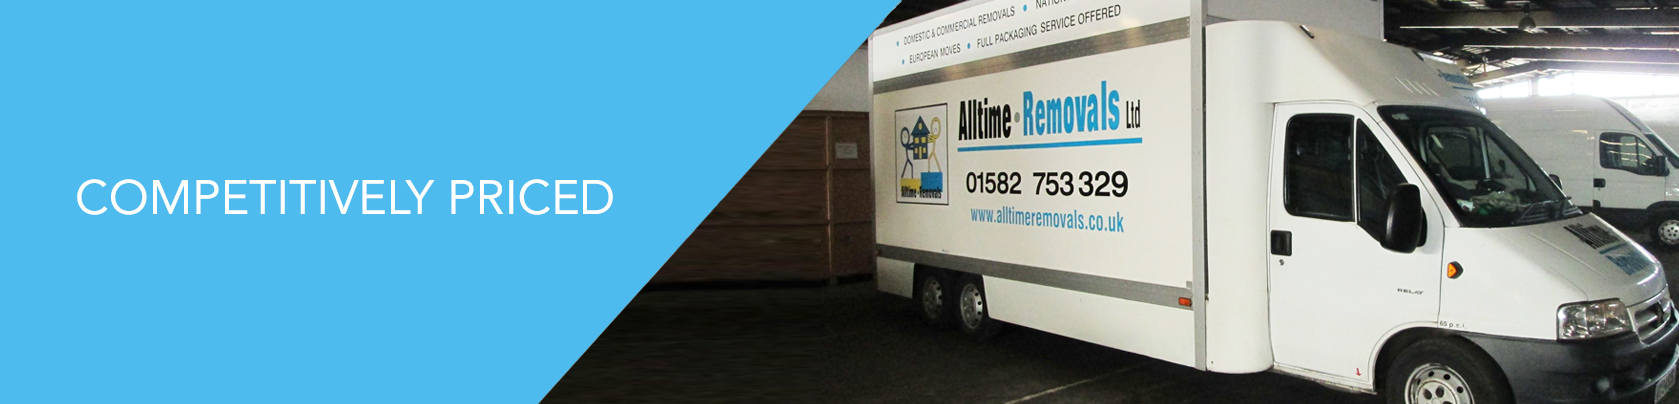 Competitively Priced Removals